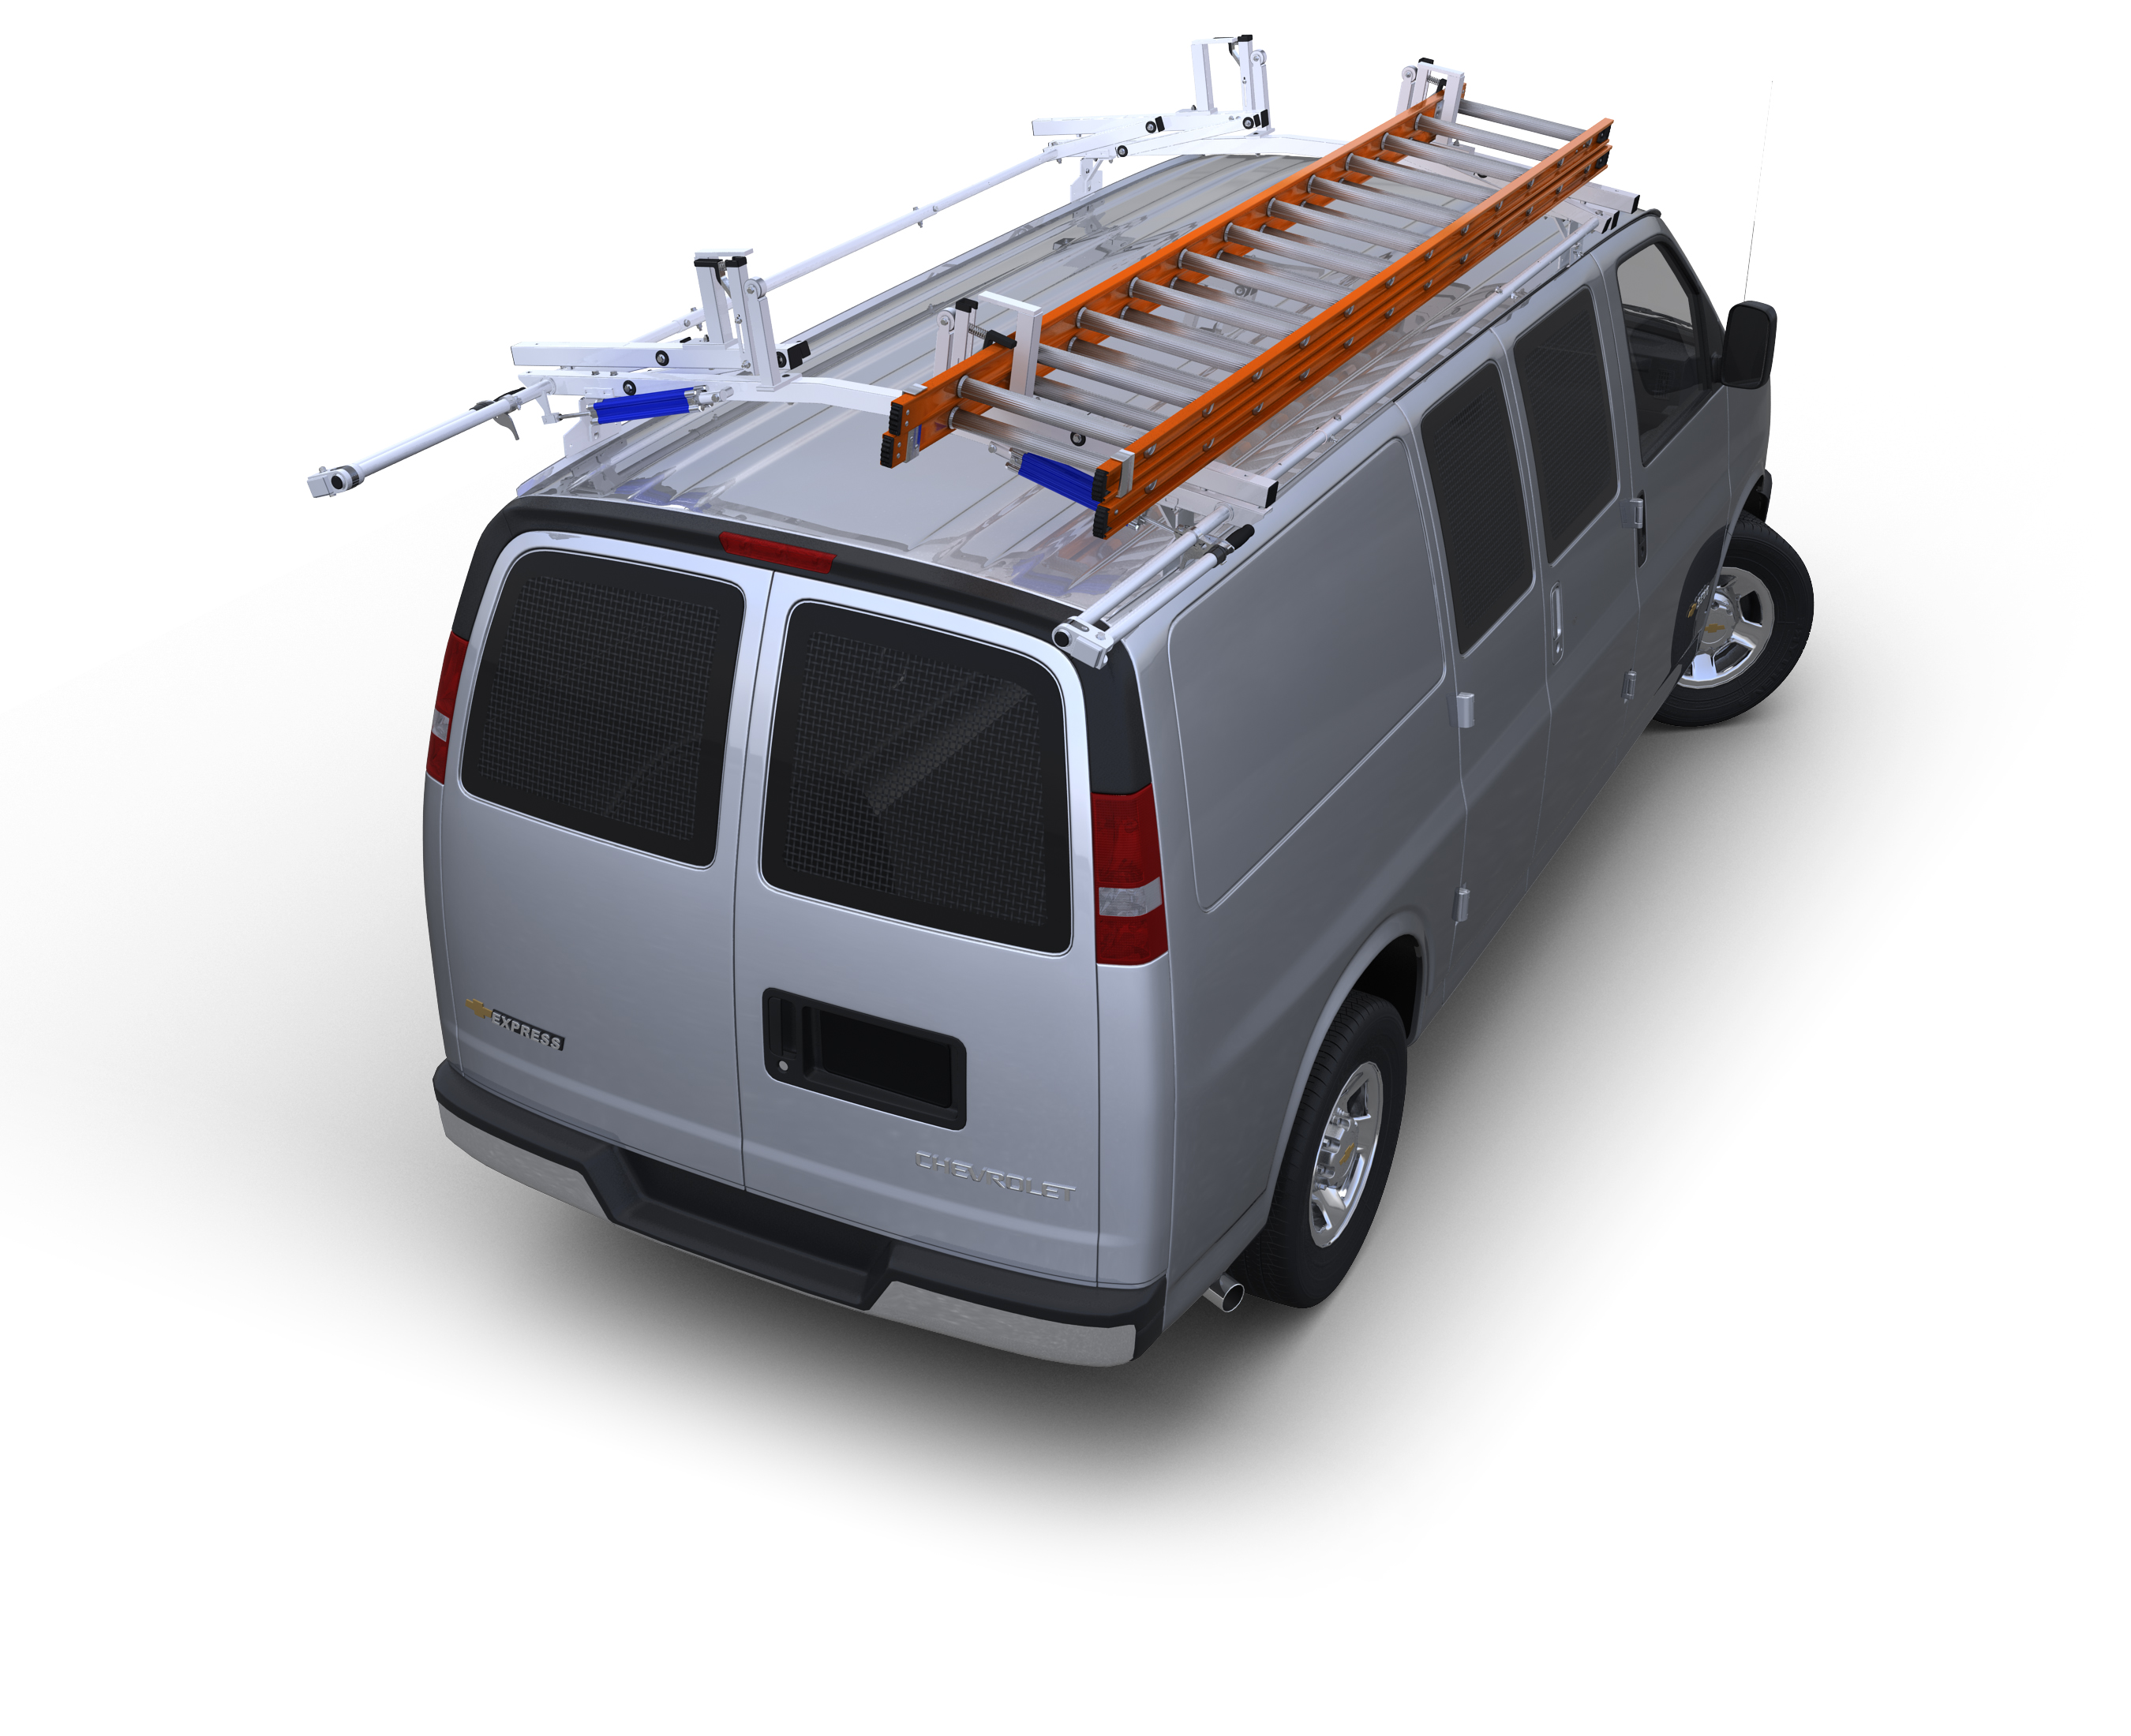 "2014 Transit Connect Contour Shelving with Back, 28"" Wide"